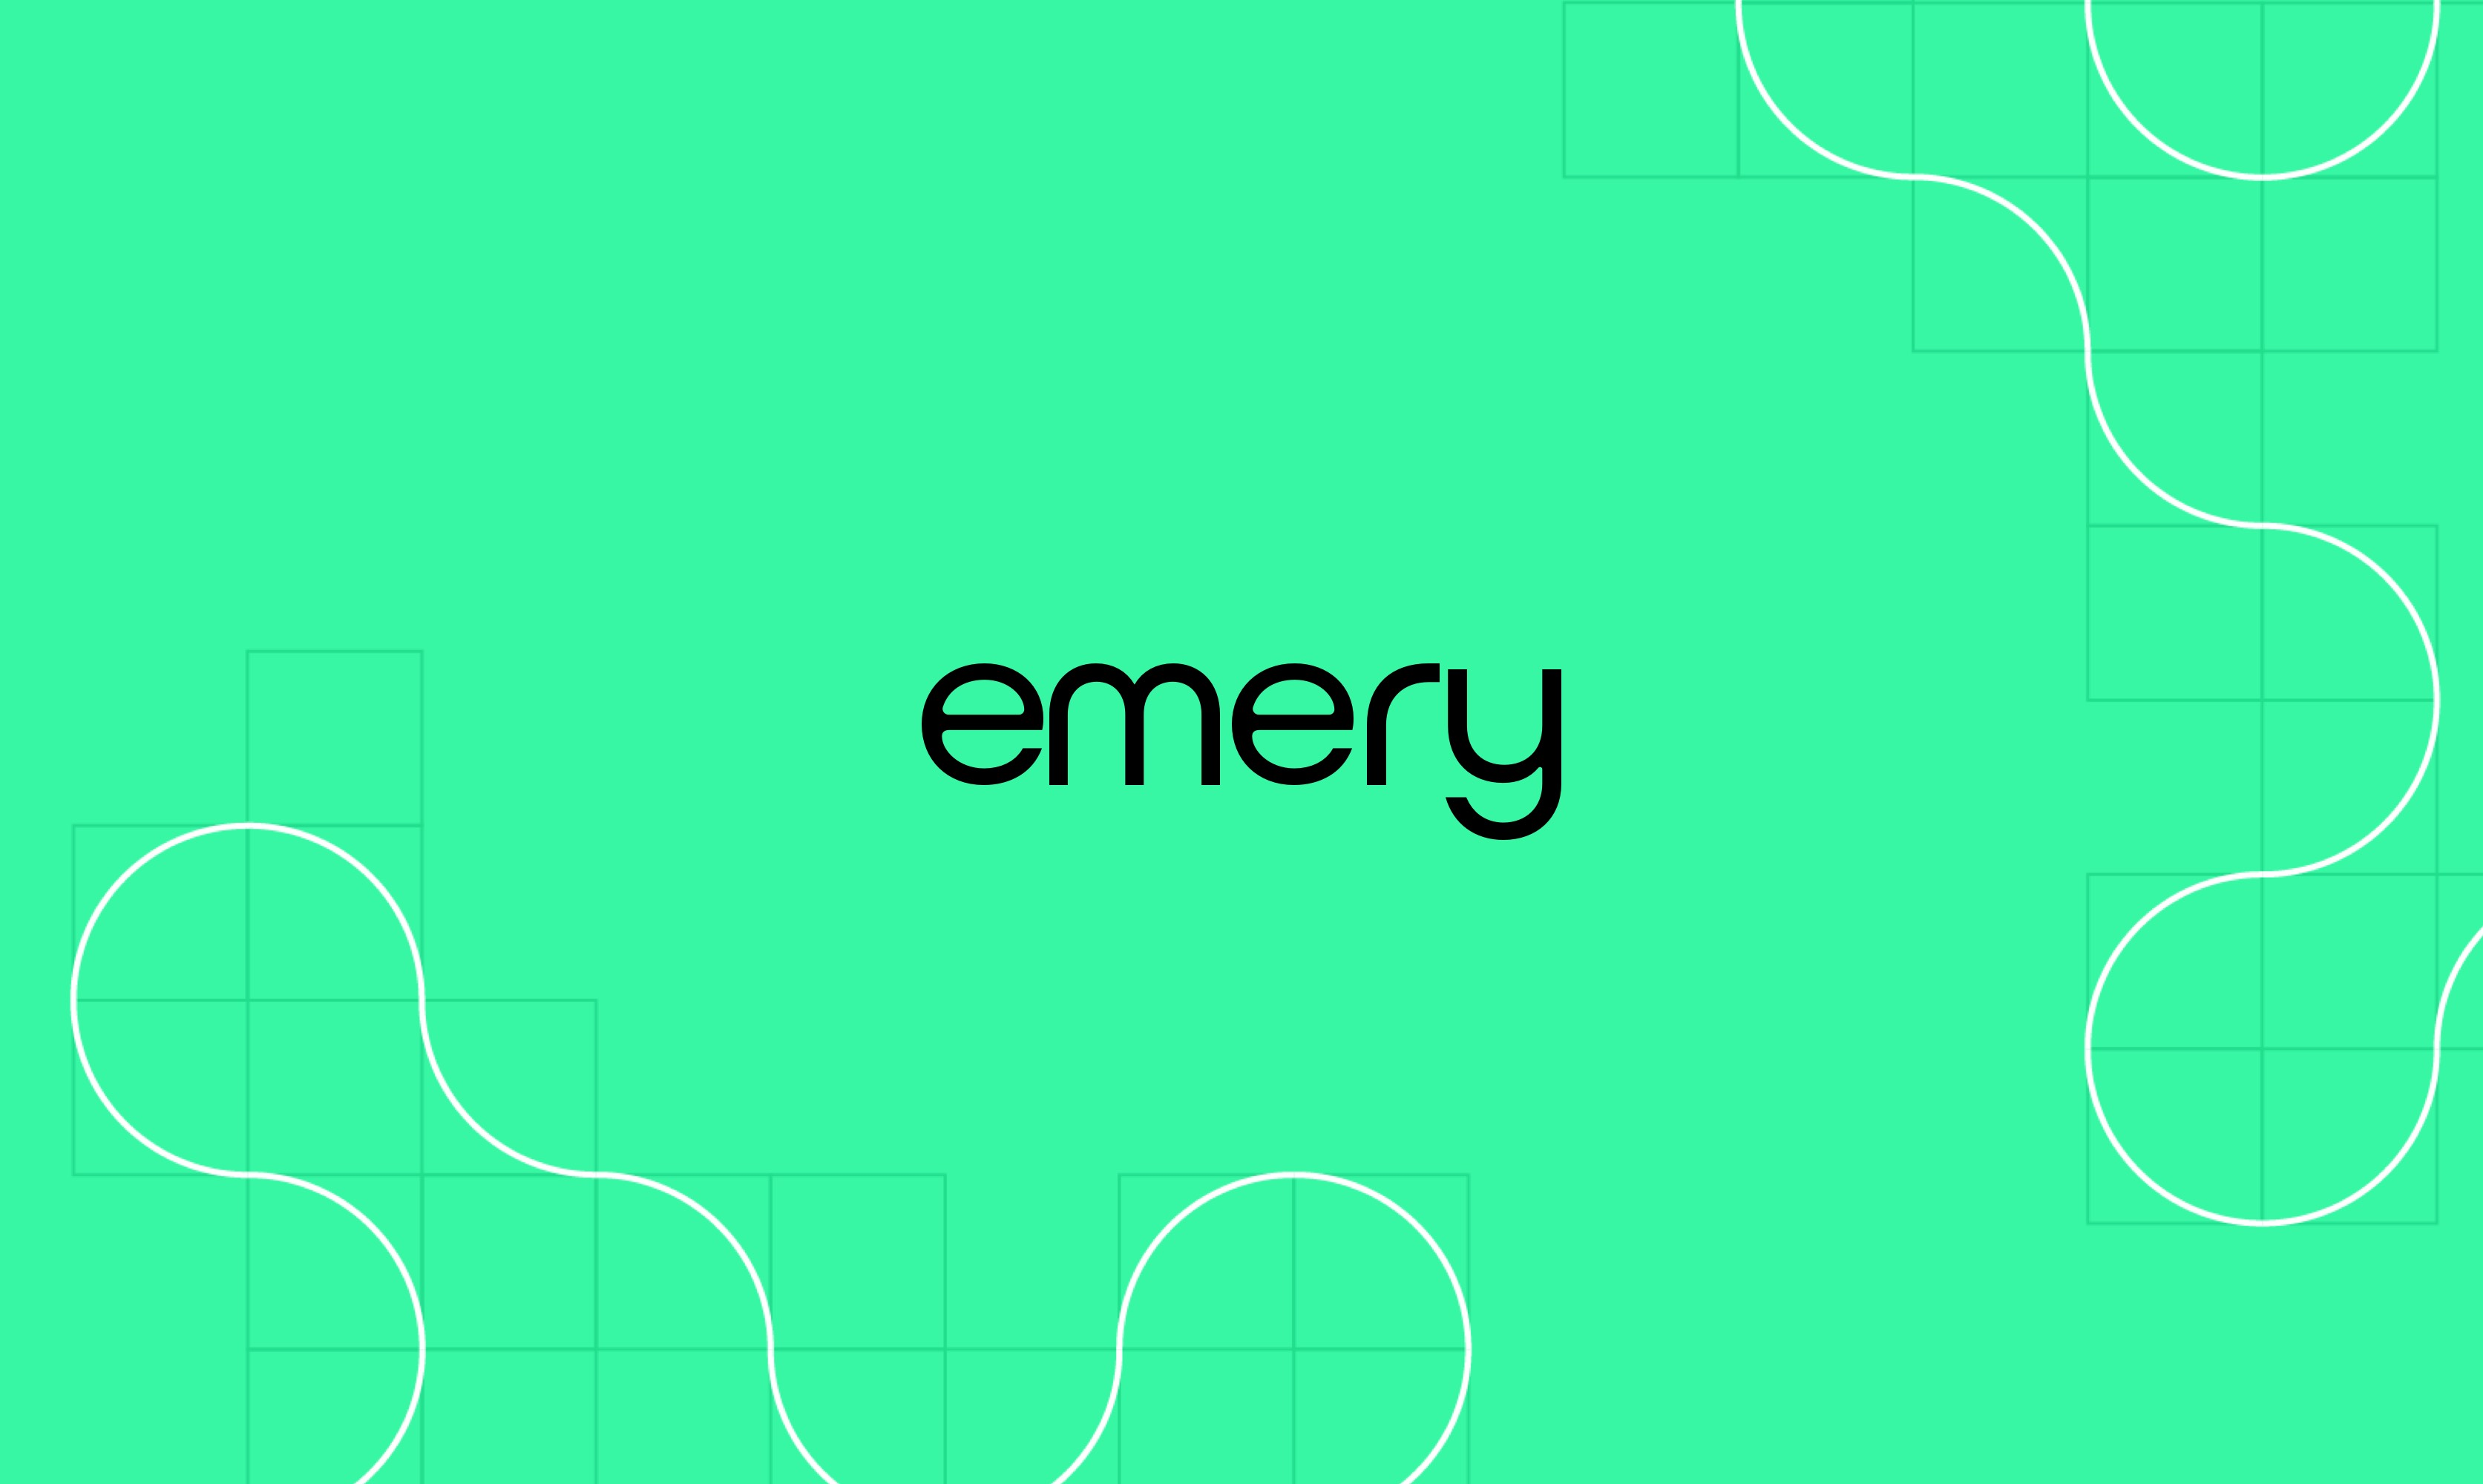 Emery logo on green color field.